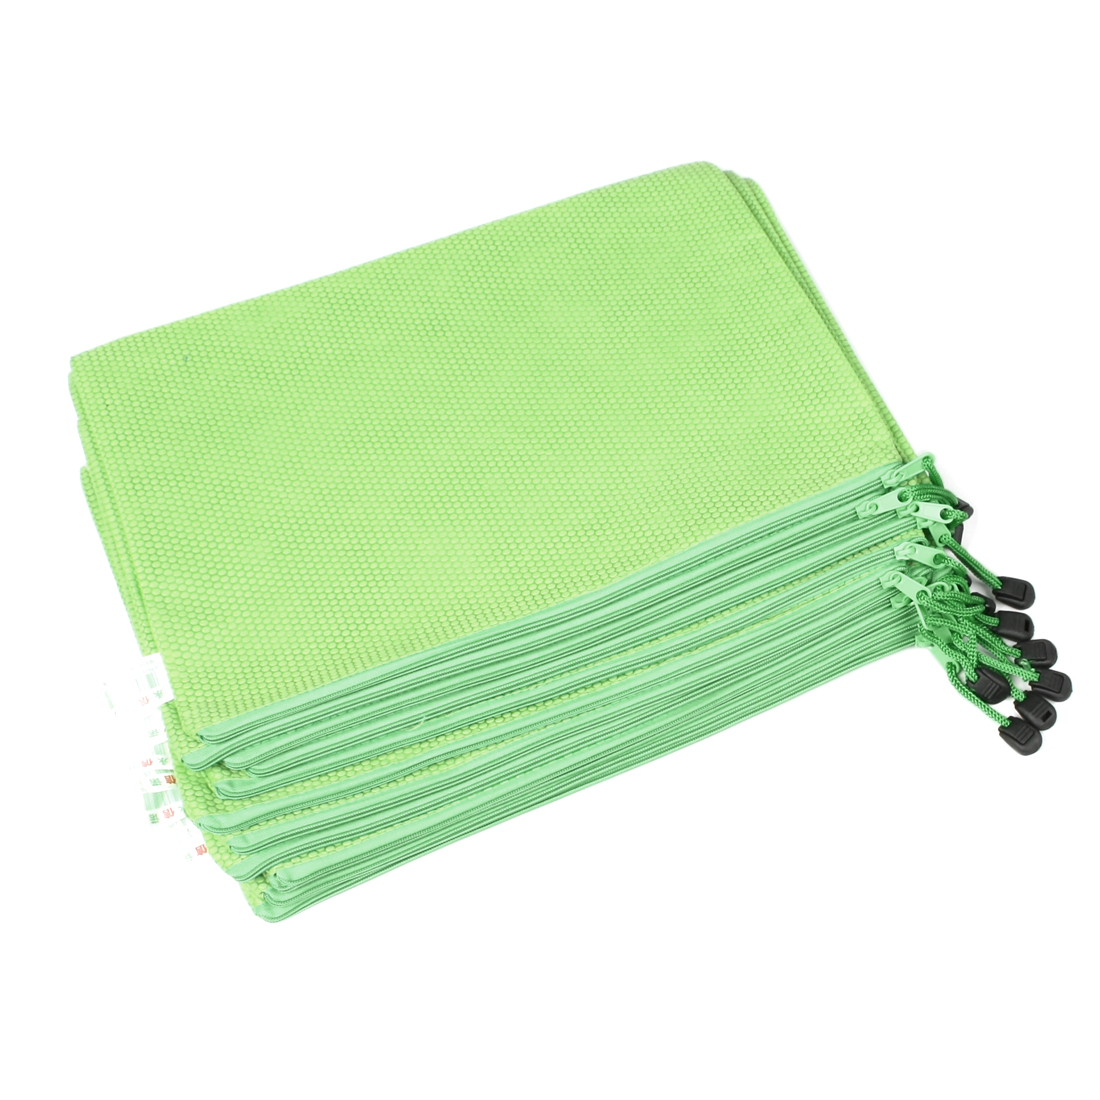 Dots Prints Nylon A4 Paper Files Document Organizer Bags Green 12 Pcs